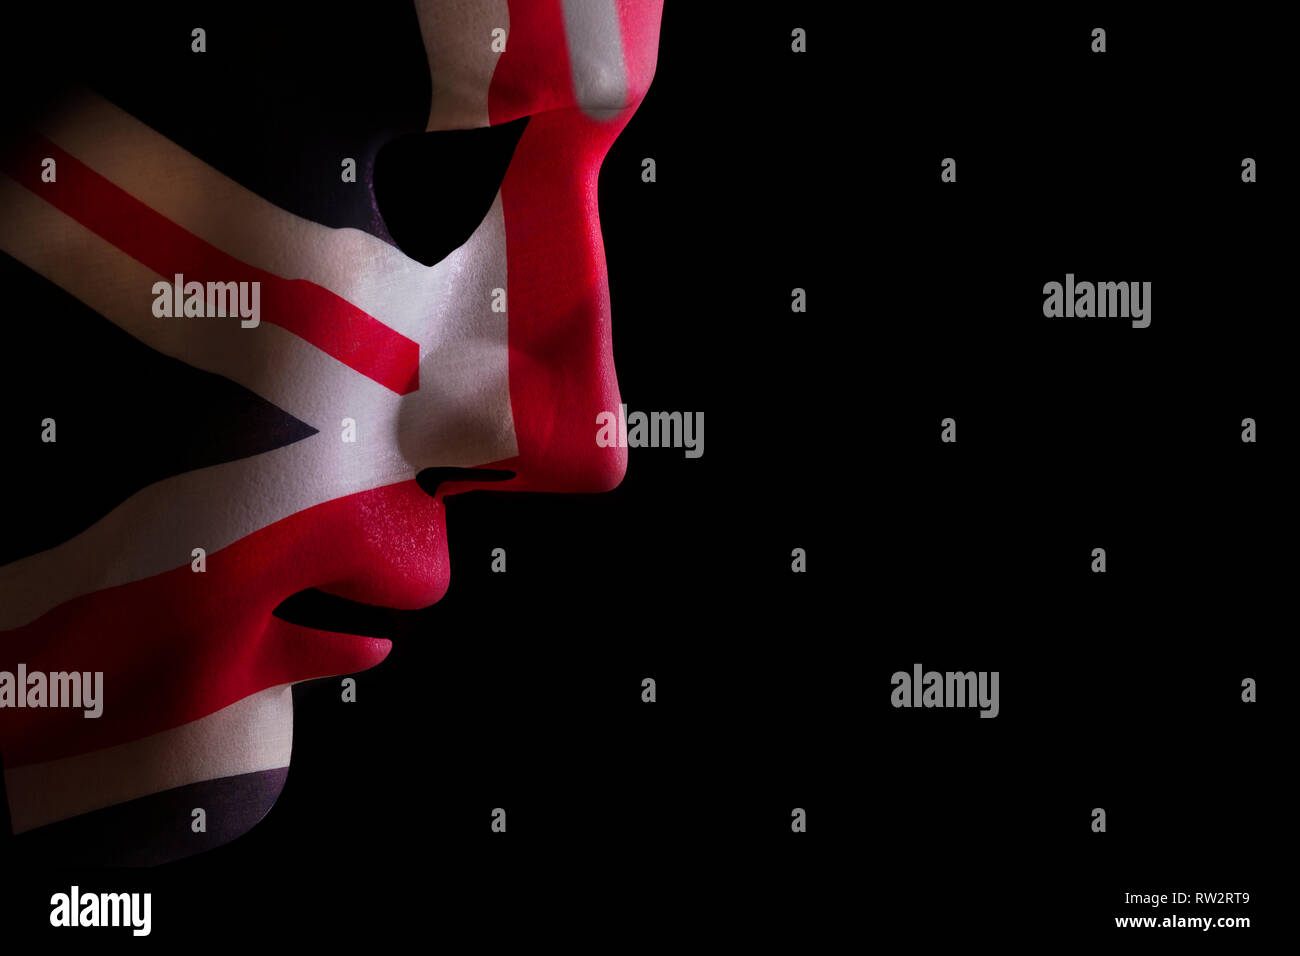 Face mask profile with a union jack flag texture looking down on a black blackground. Space for text - Stock Image